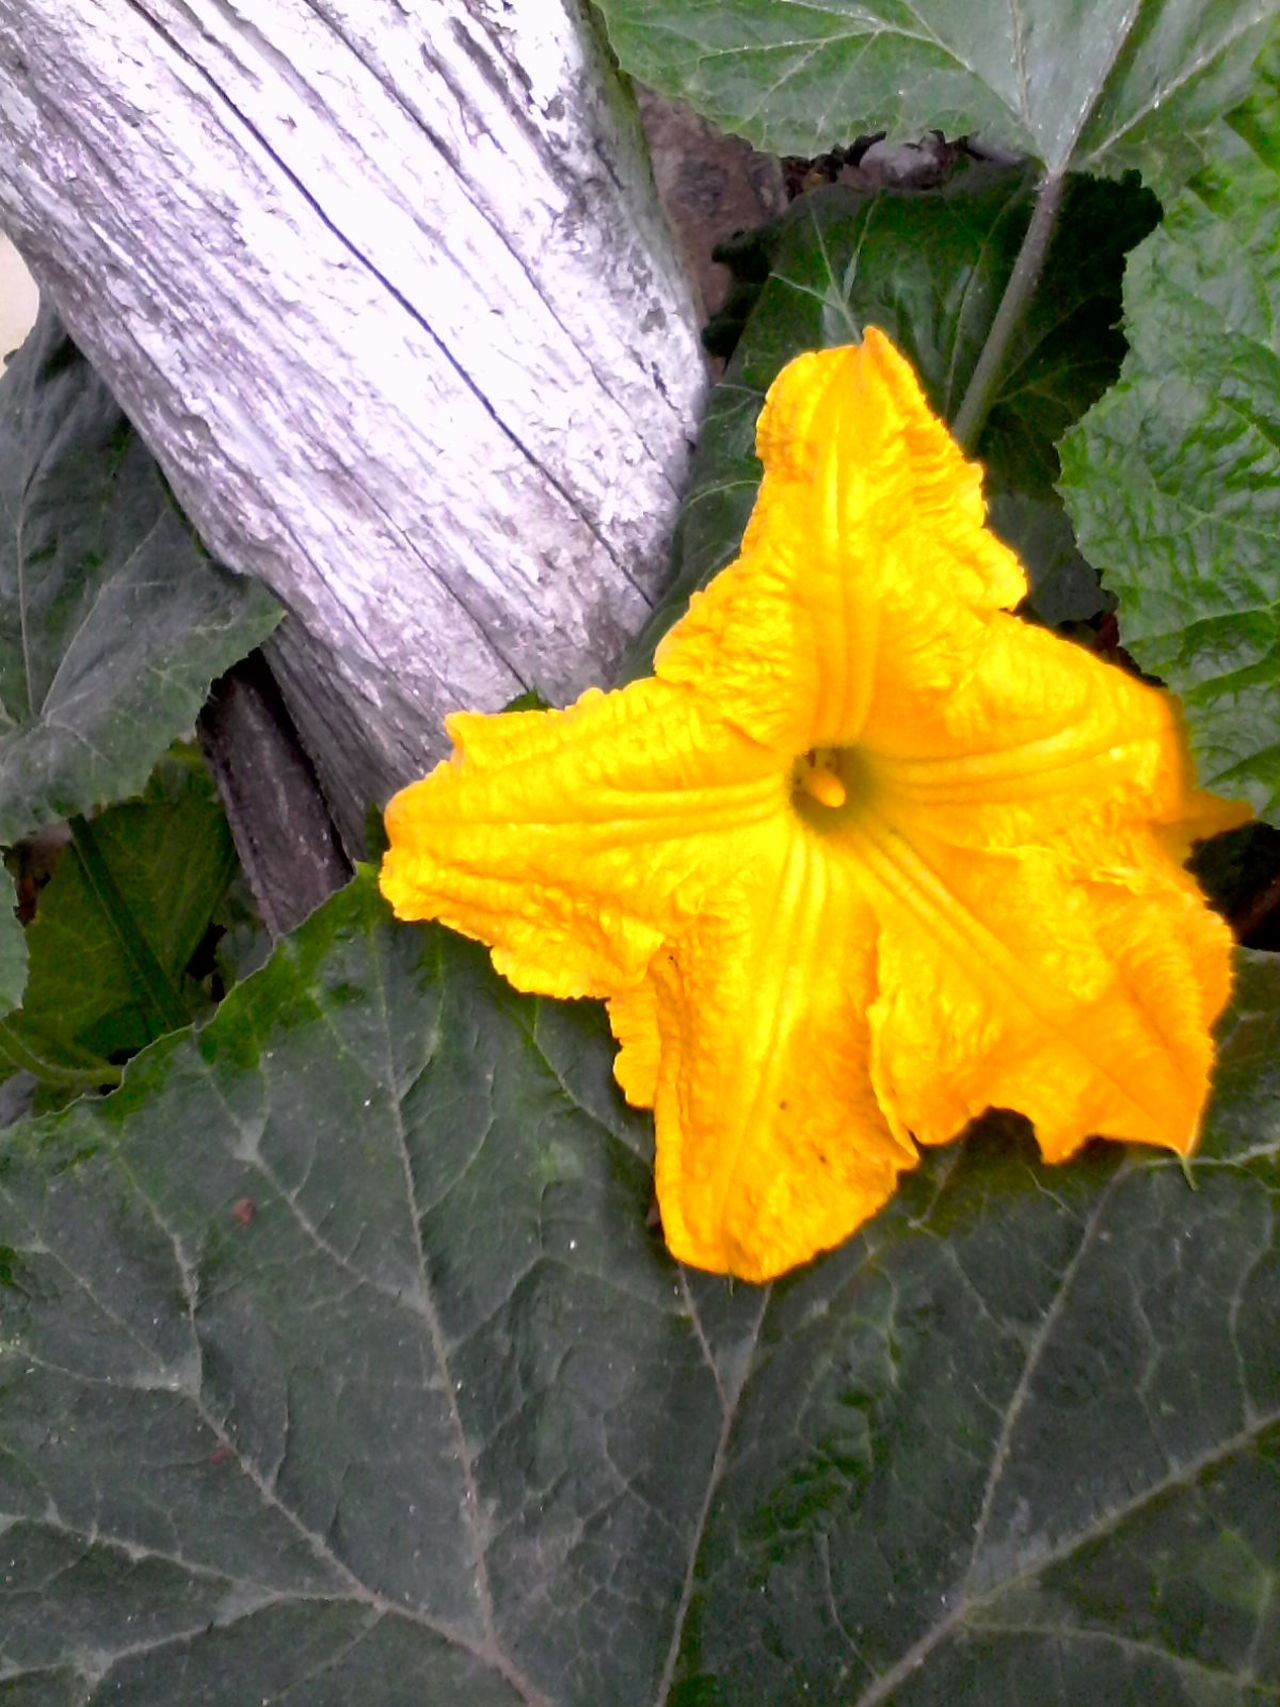 Unedited Color Photo 2016 Blossom Unedited Photo Pumpkin Plant Unedited Plant Nature @wolfzuachis Romanian  Eyeem Market Ionitaveronica Plants Green In My Backyard Eyeemphoto Showcase: August Vines Showcase: 2016 Wolfzuachis Slowfood Original Content Pumpkin Blossom Pumpkin Leaves Pumpkin Flower